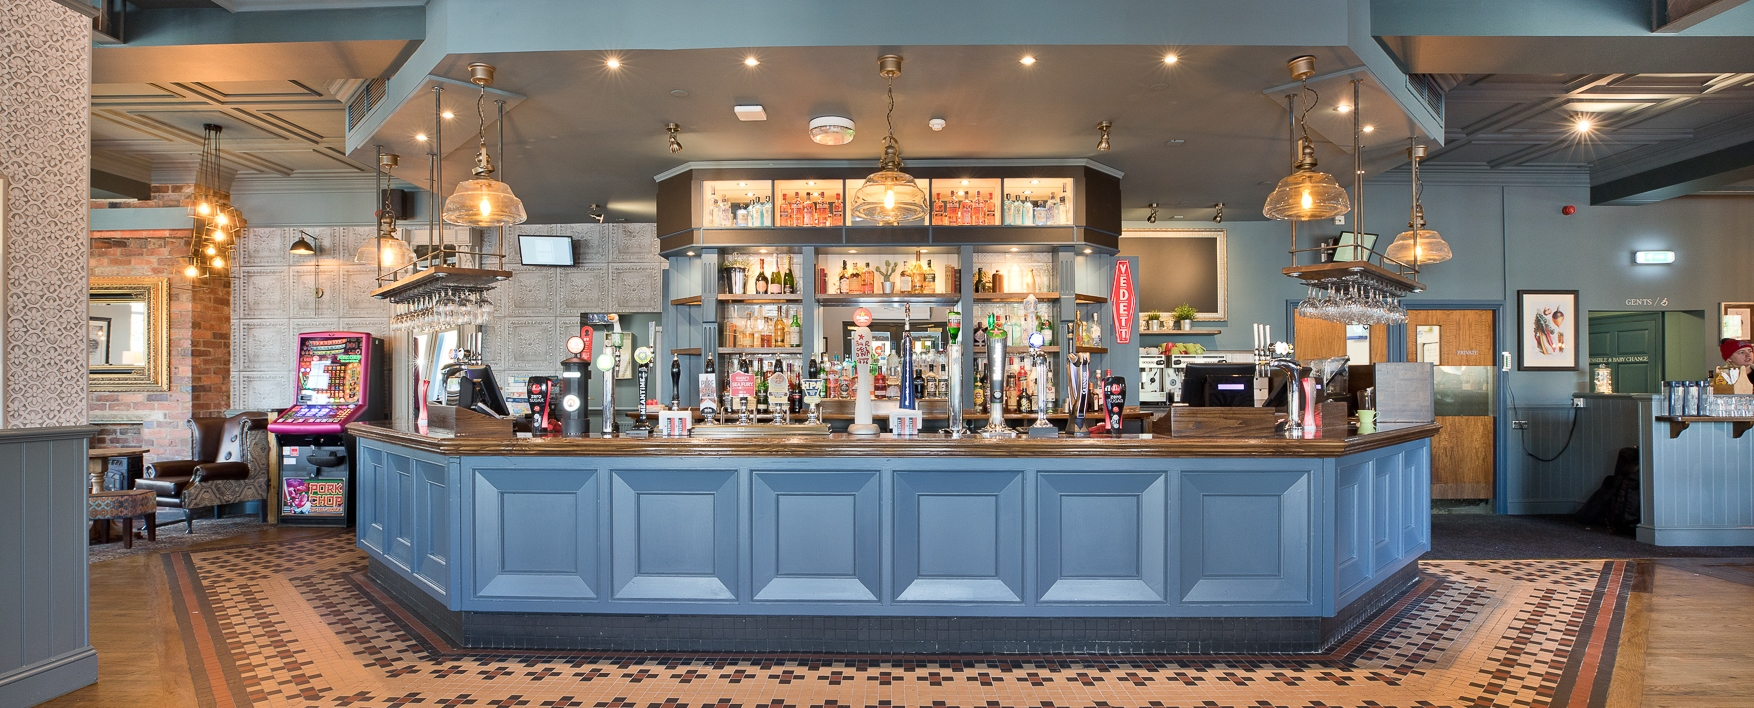 Varsity Pubs In Coventry Serving Pub Food